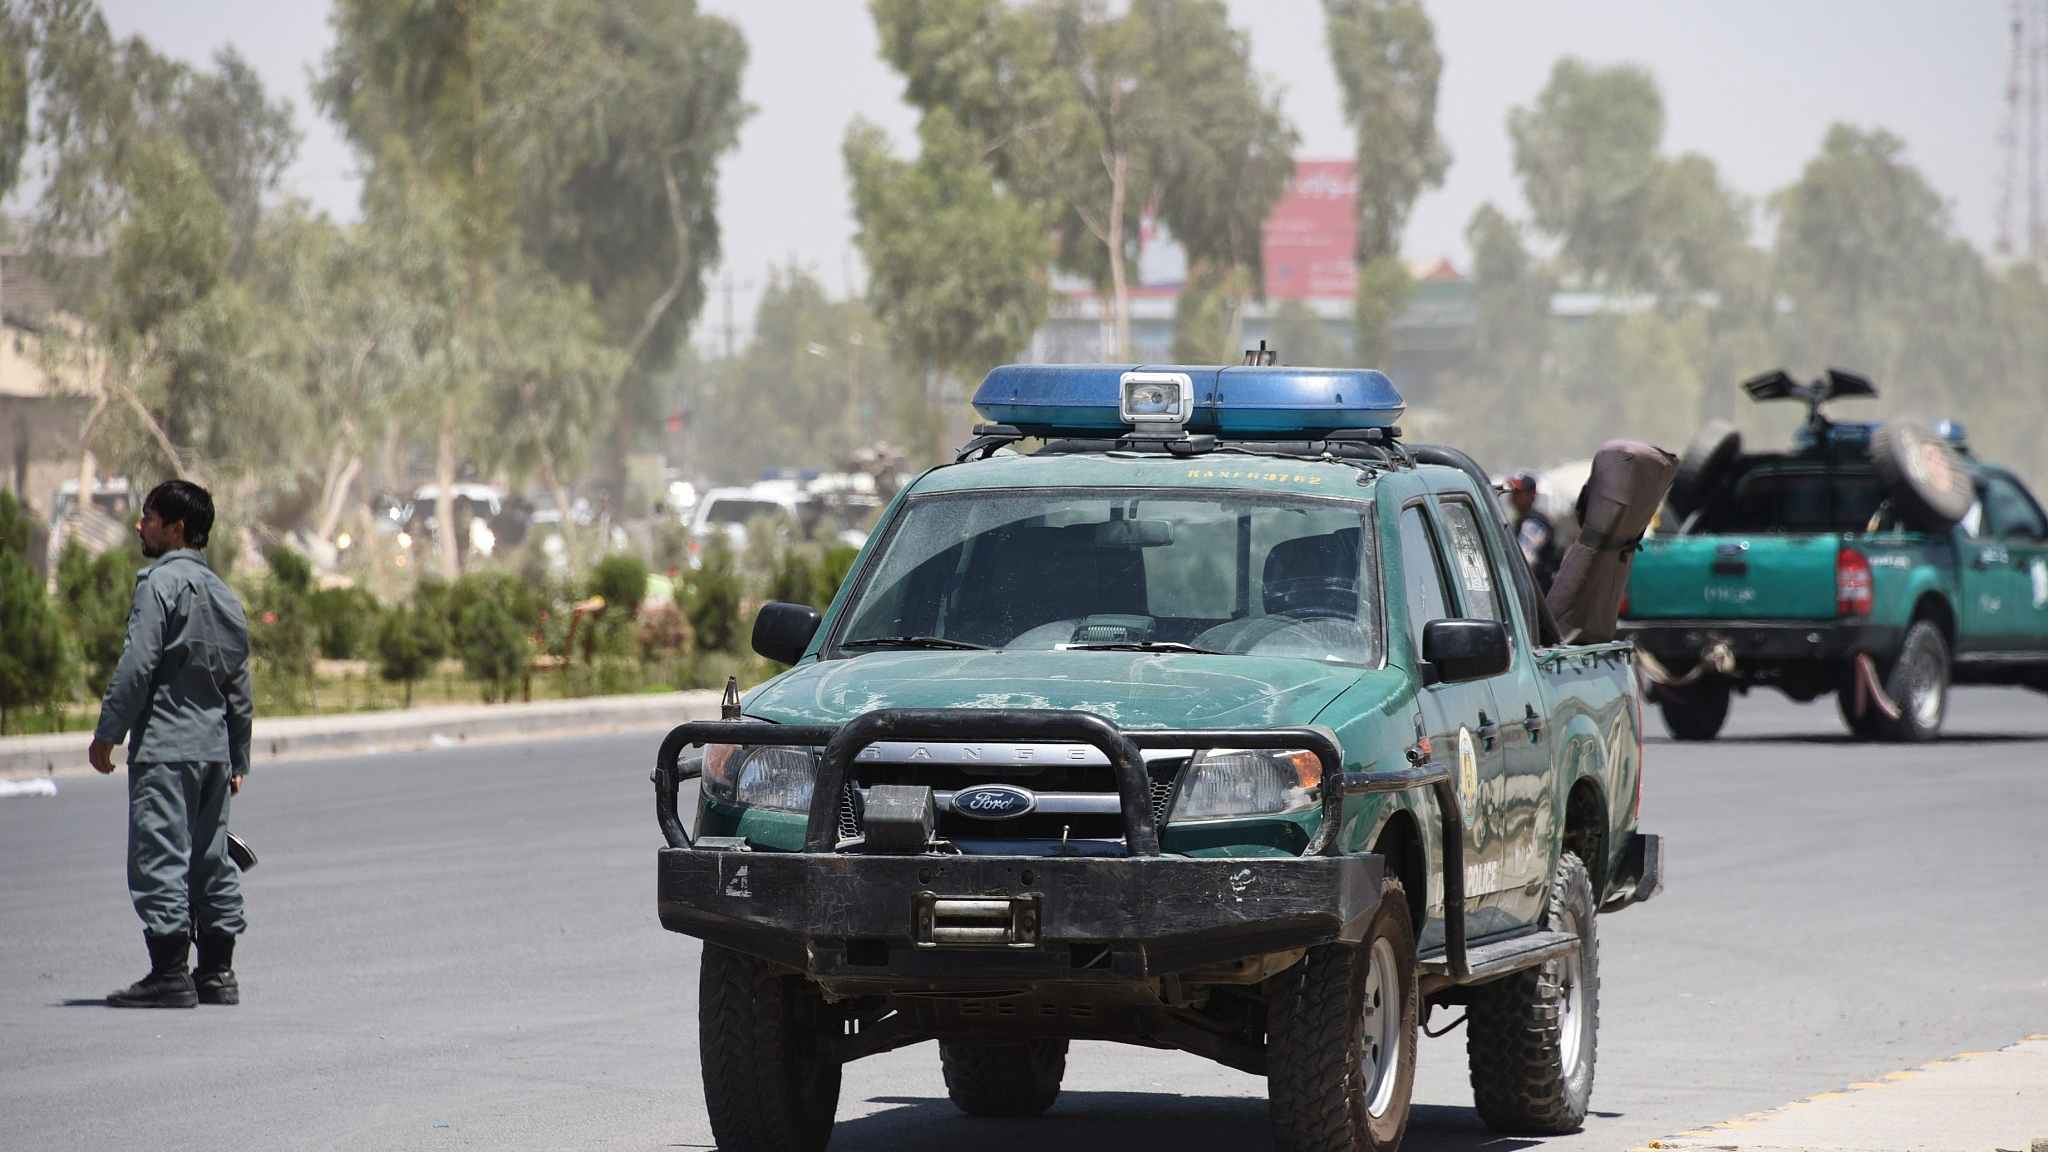 3 top Afghan provincial officials killed in shooting